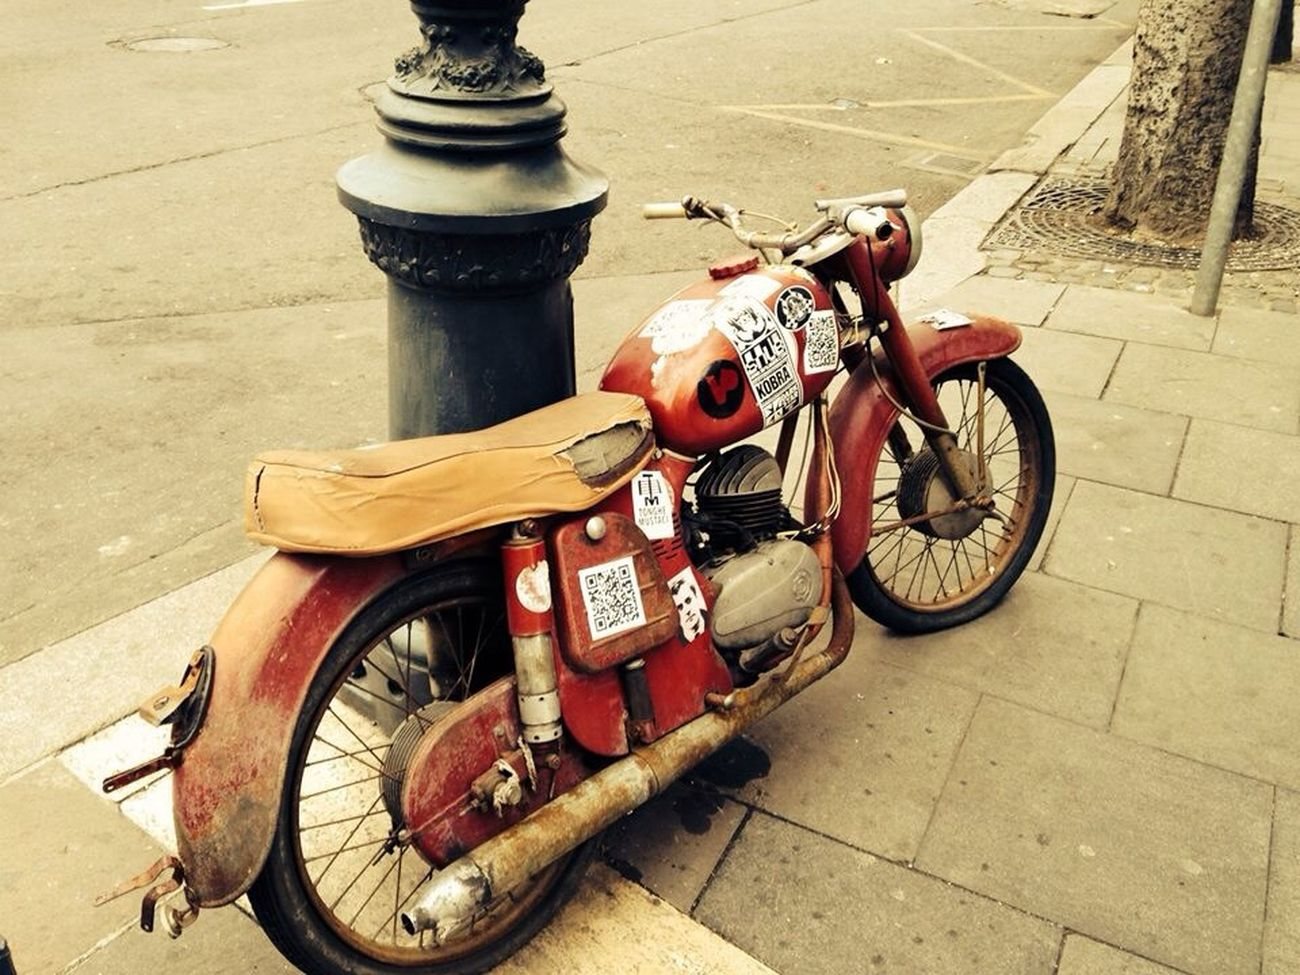 Budapest Bike Your Art Is Portable With Caseable EyeEm Best Shots OpenEdit Traveling The Drive Embrace Urban Life